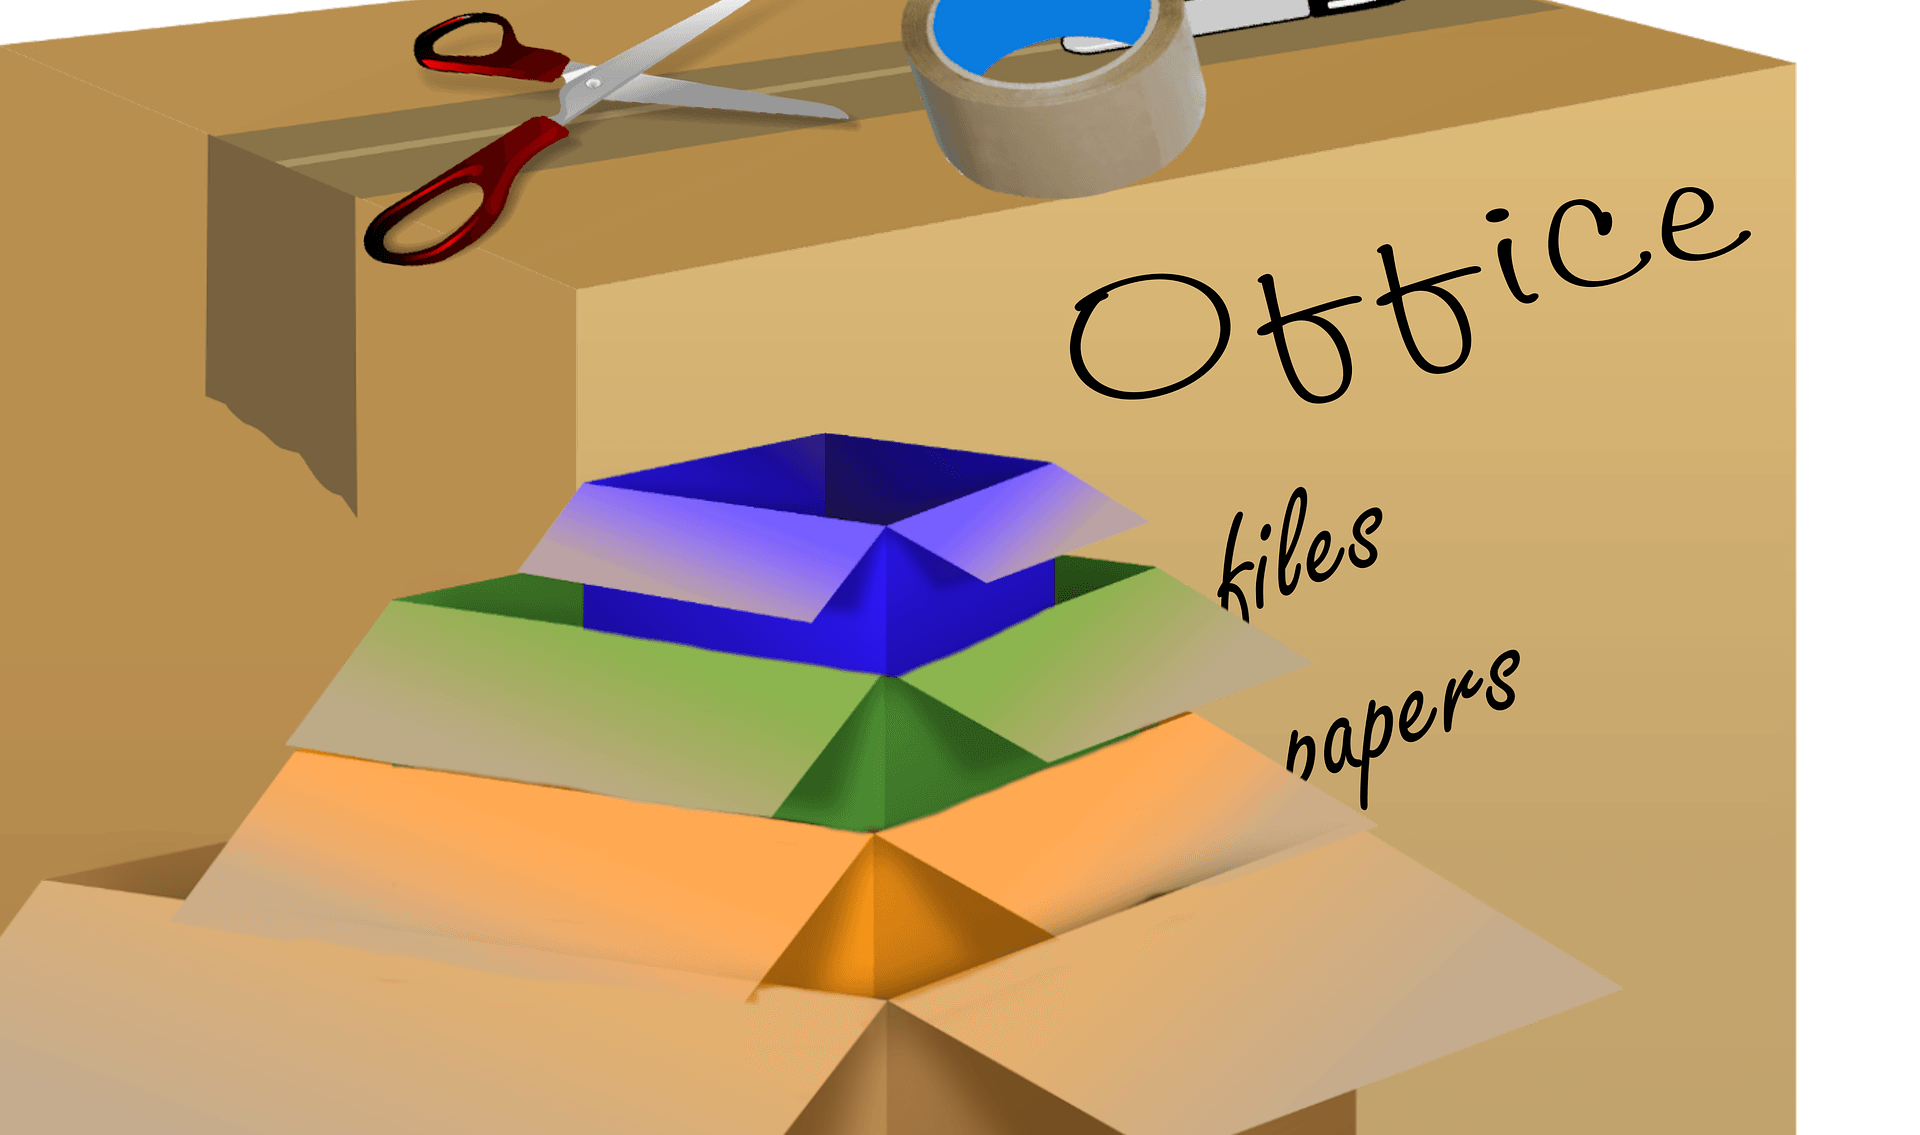 boxes-2120367_1920.png